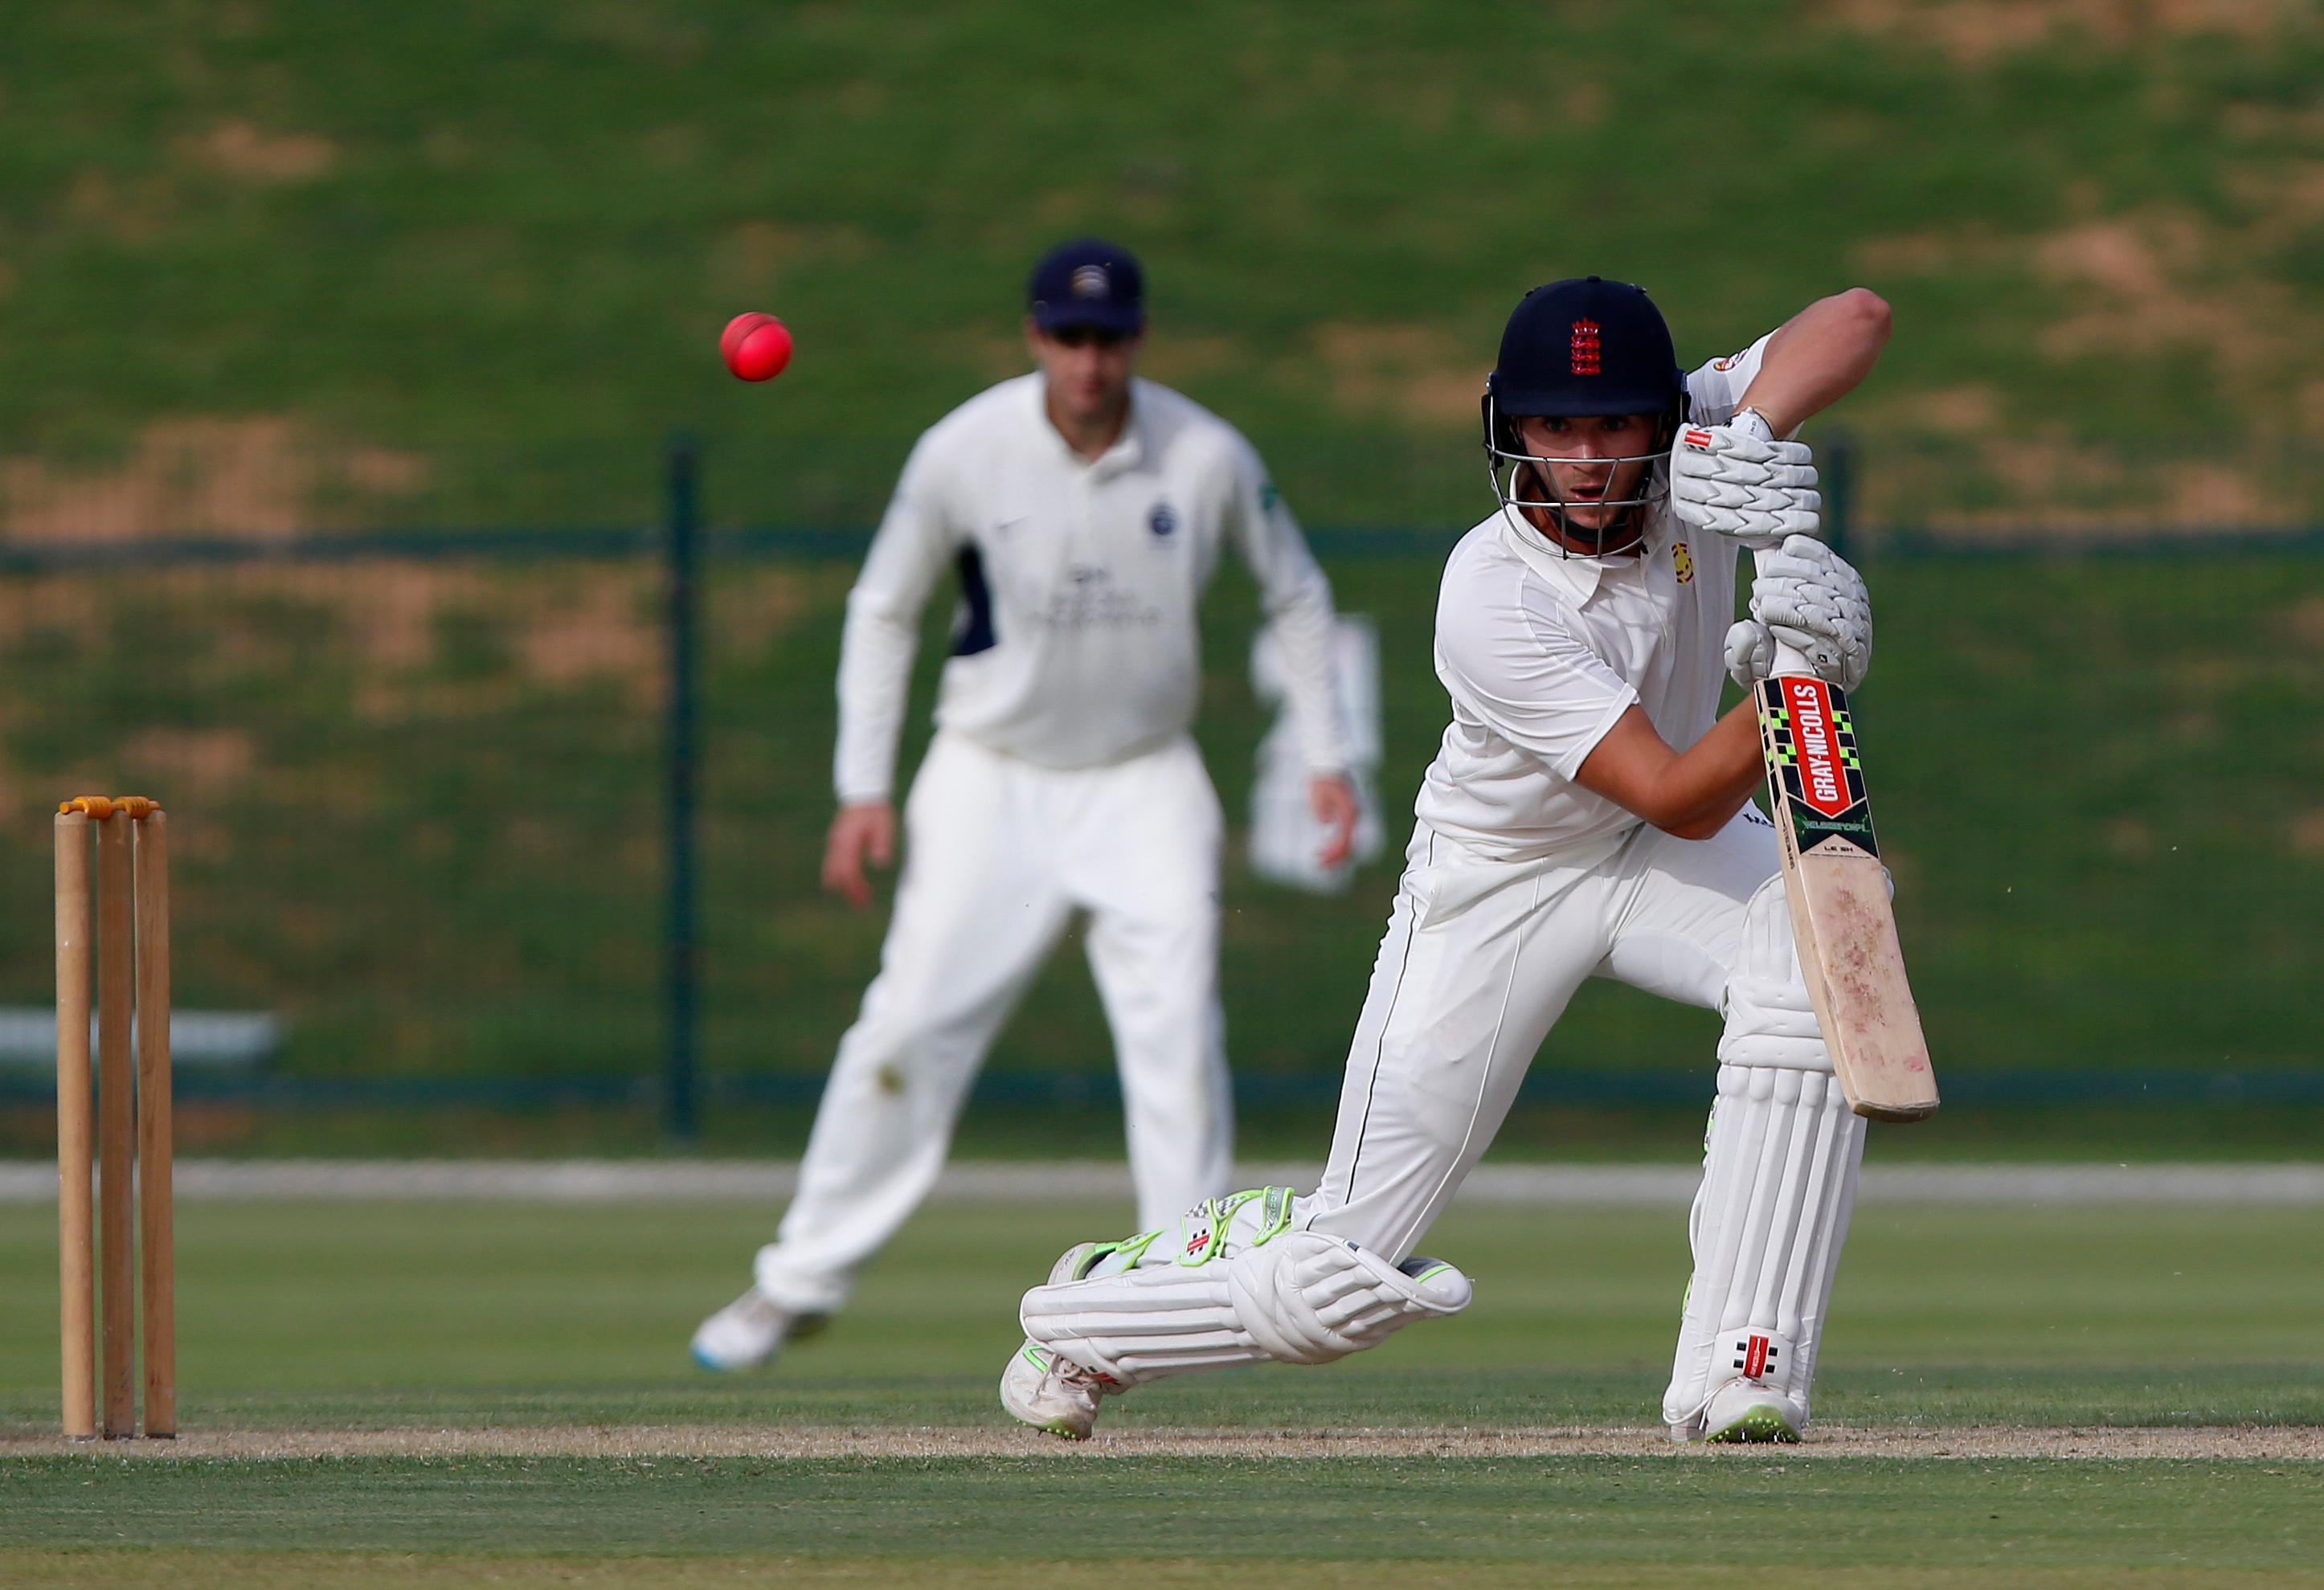 ecb.co.uk - Clarke and Cox give Worcestershire pink ball advantage